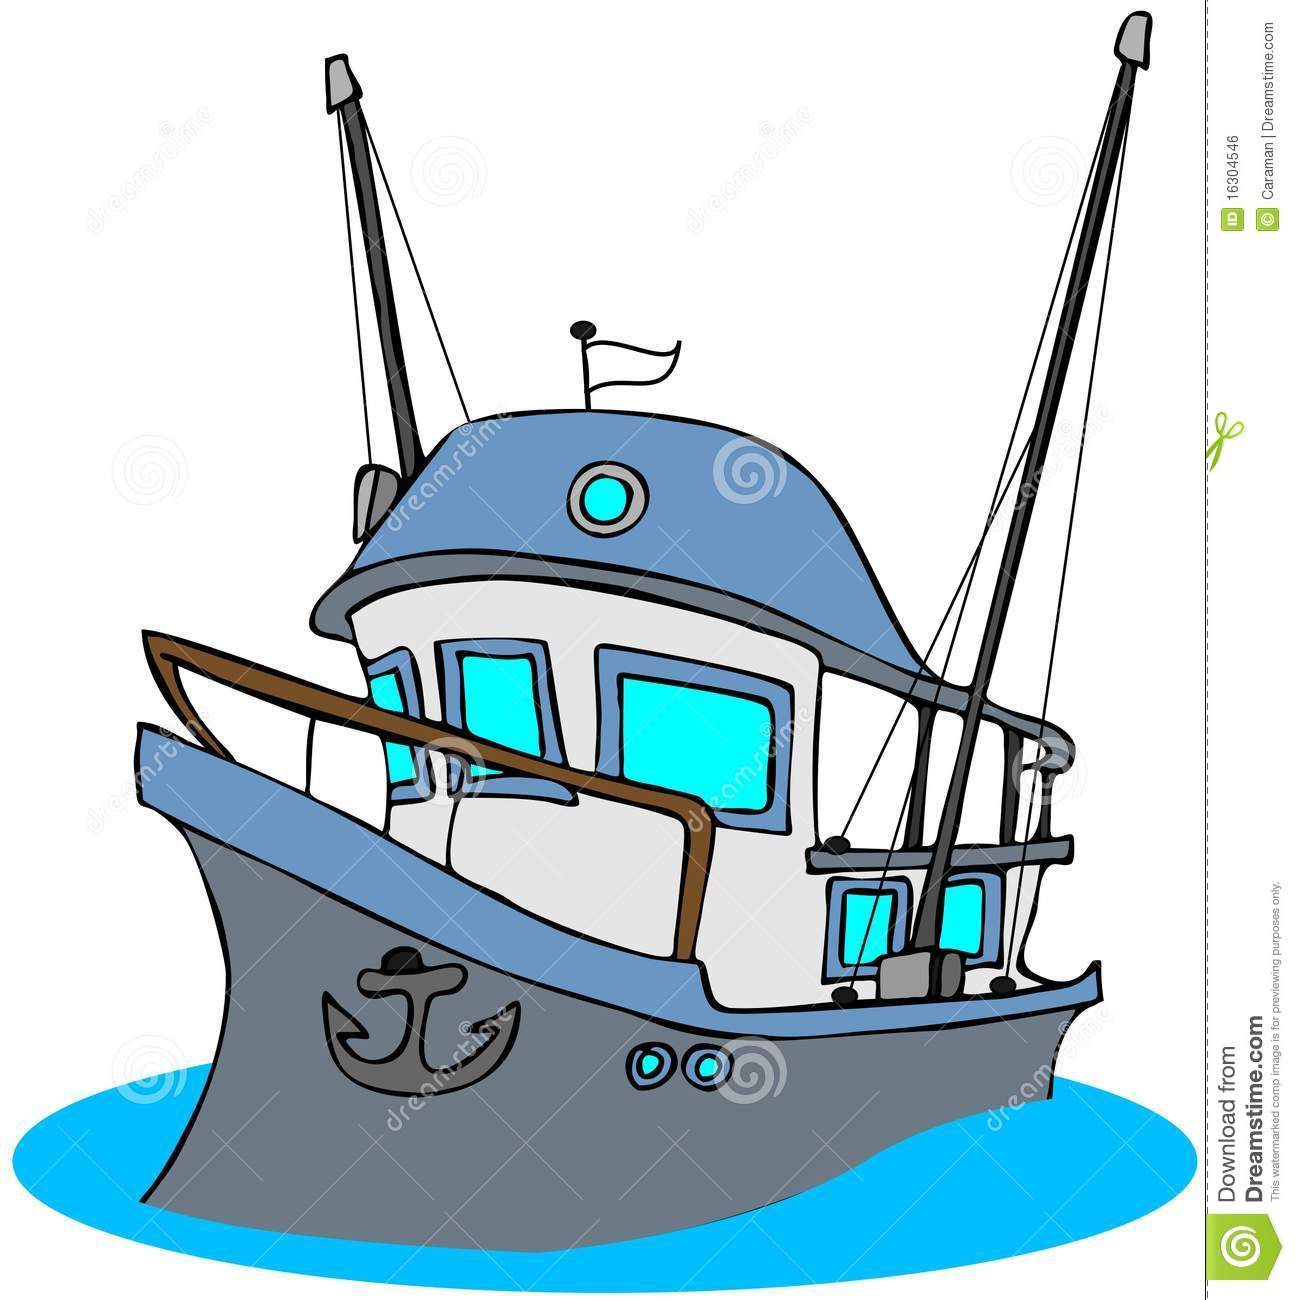 1295x1300 Collection Of Commercial Fishing Boat Clipart High Quality